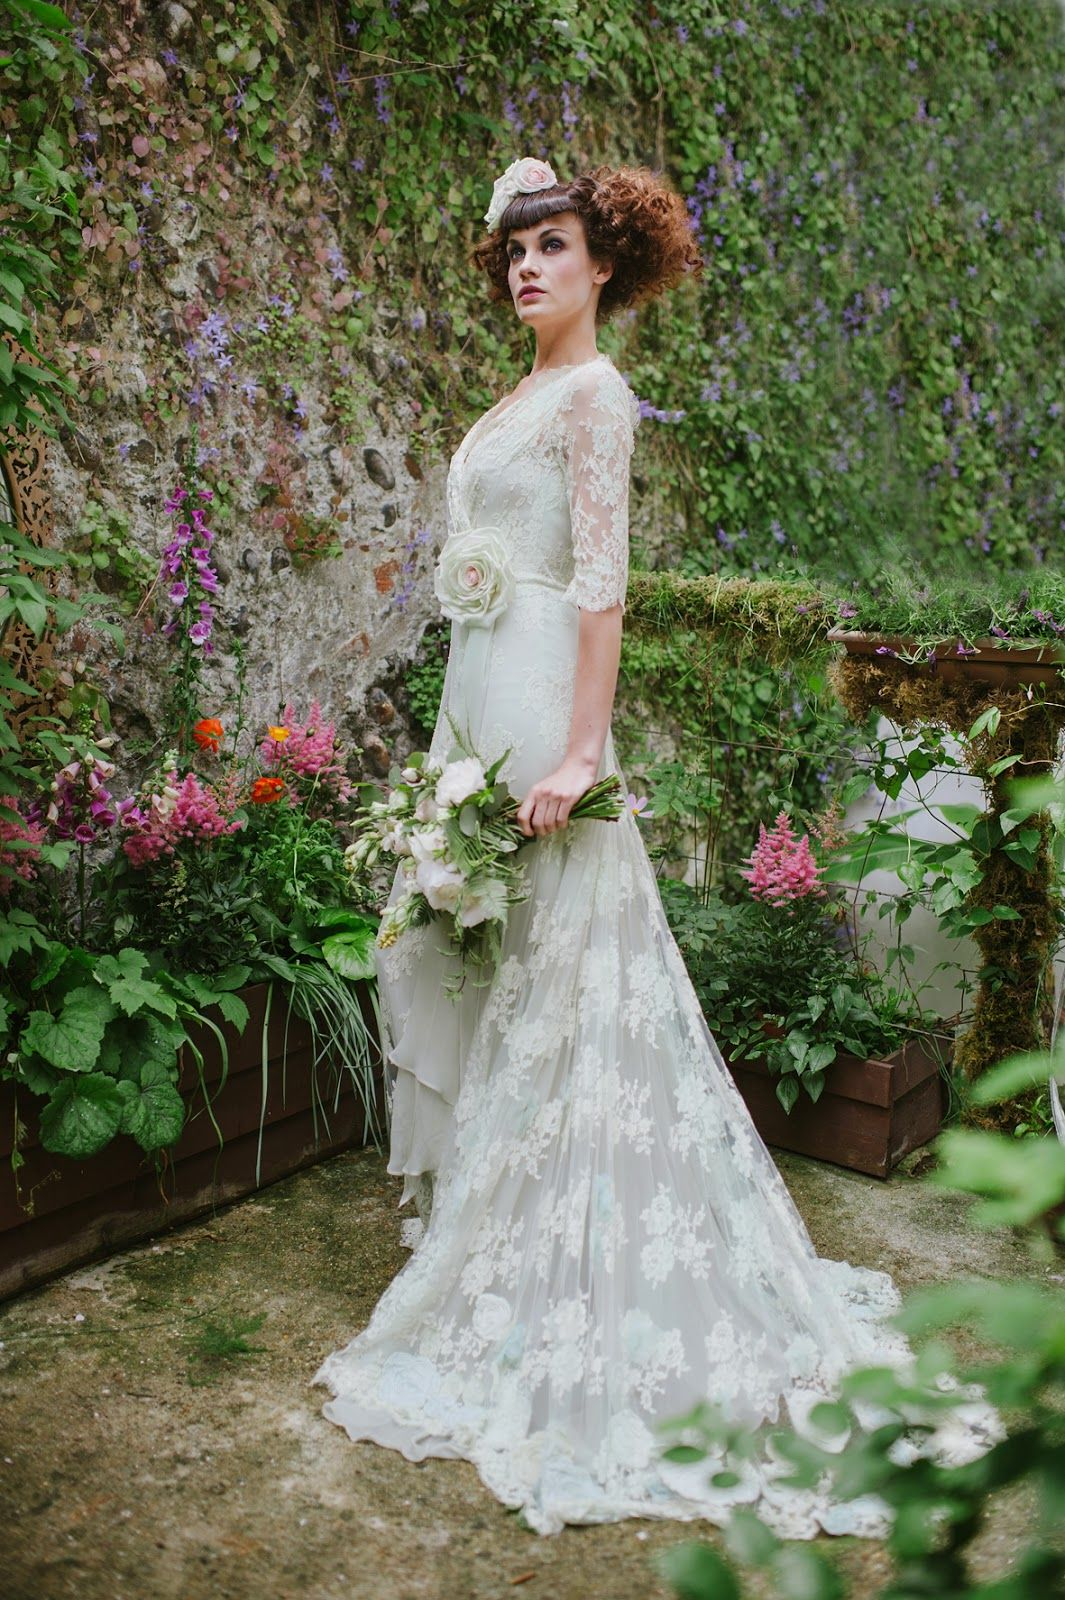 Pale Green Lace Wedding Dress with a Vintage Inspired